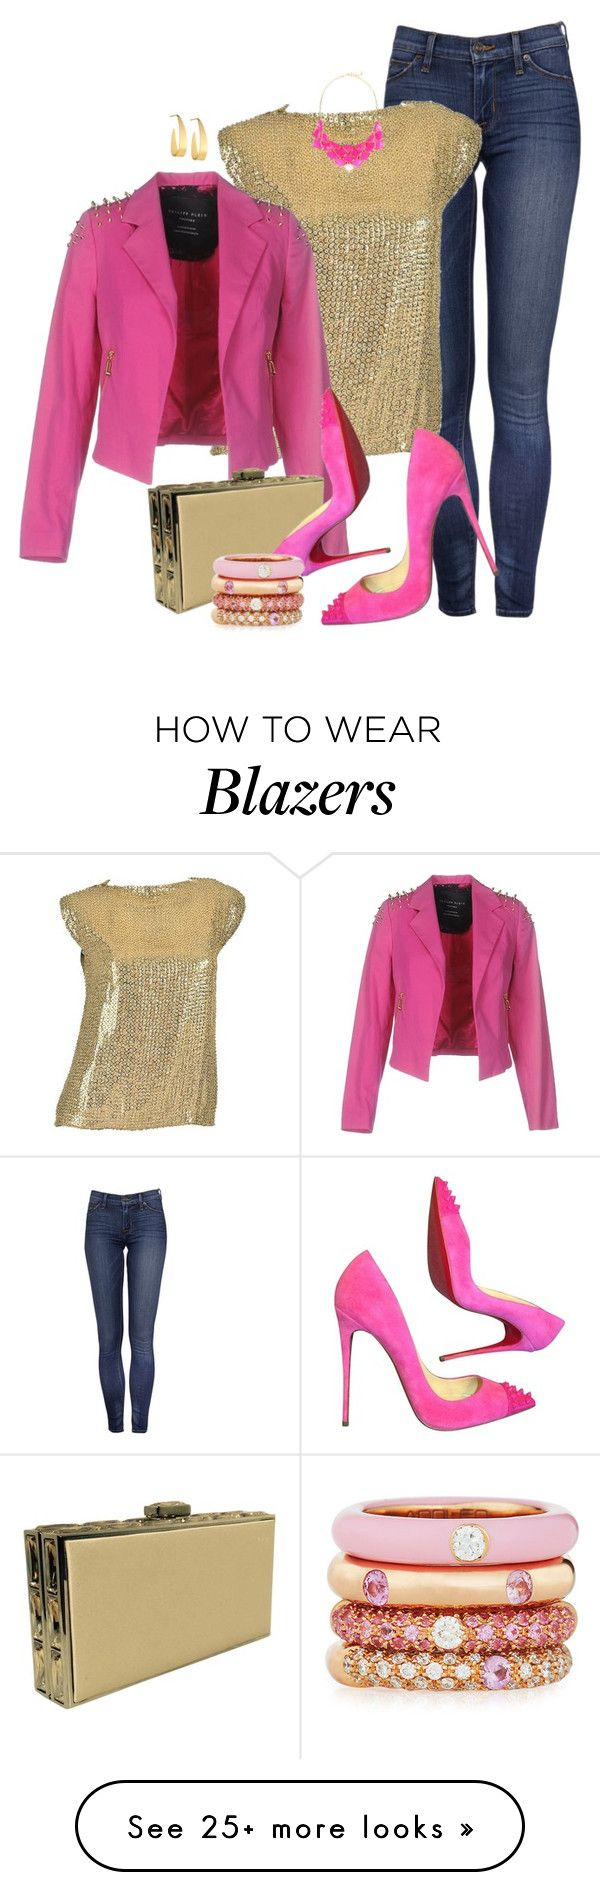 """PINK STUD by ShaunSlay"" by shaunslay on Polyvore featuring Pierre Balmain, Philipp Plein, Judith Leiber, Christian Louboutin, Adolfo Courrier, George J. Love and Lana"